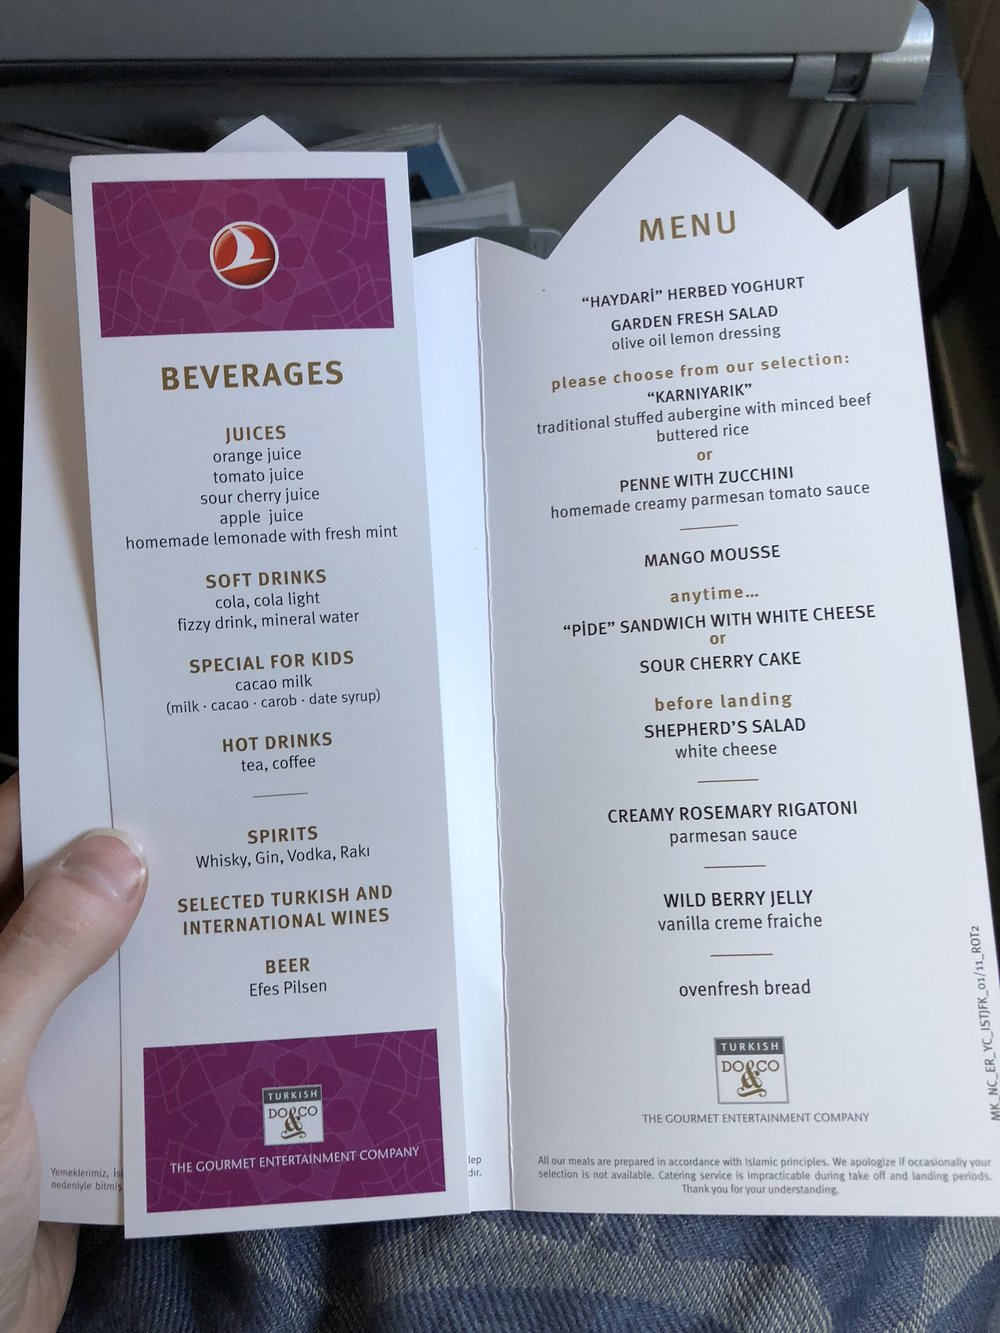 The standard menu doesn't list the gluten-free options, but I enjoyed reading about the offerings for everyone else. Still very impressive airplane fare!